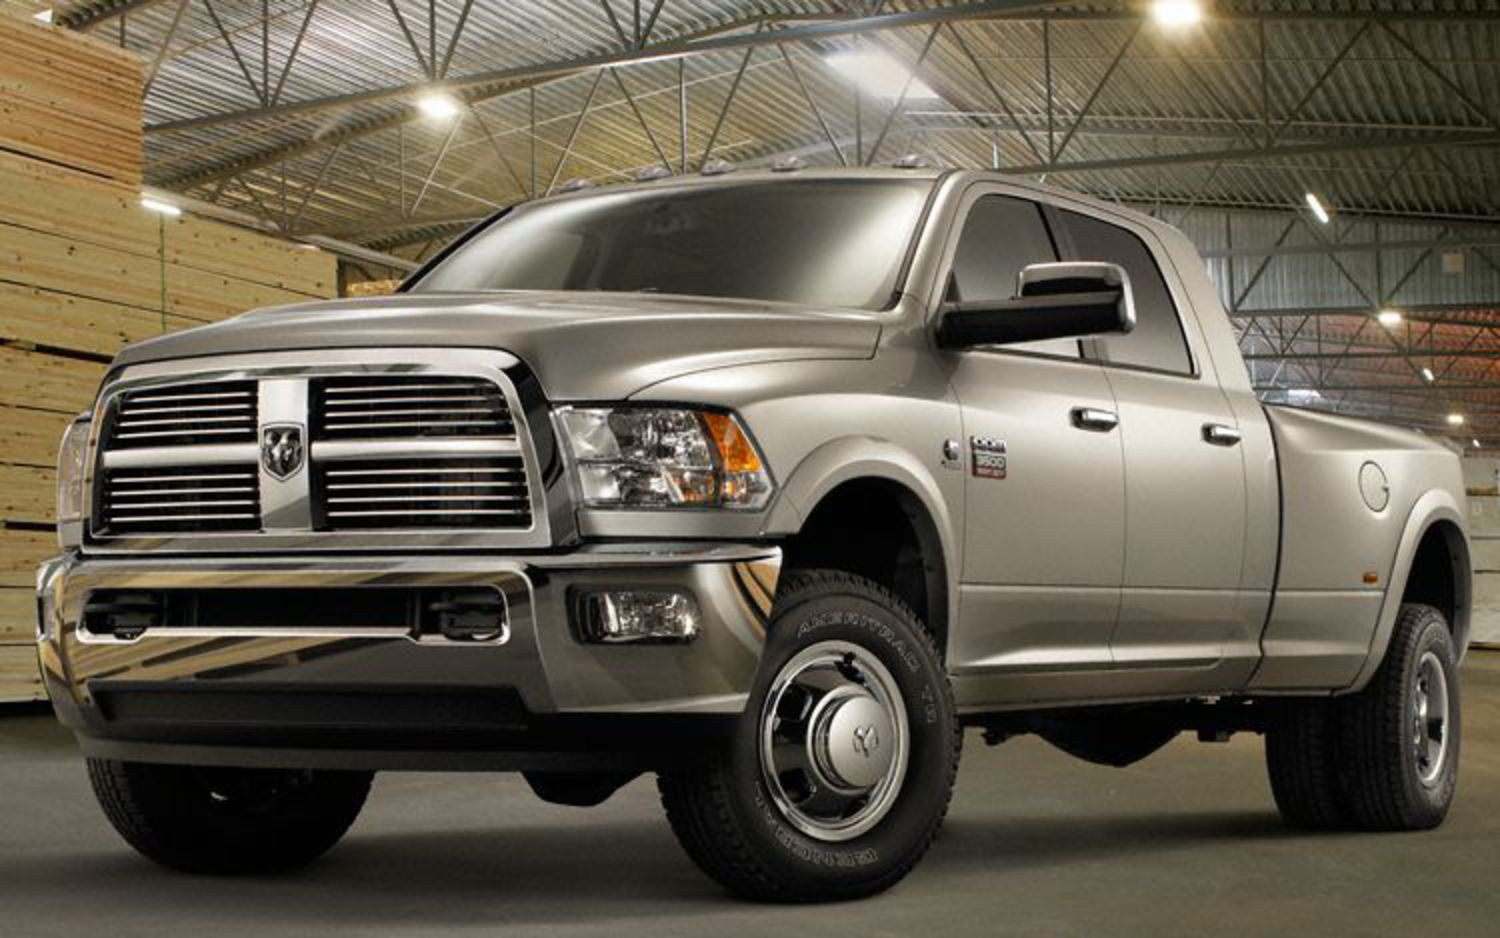 2010 Dodge Ram 3500: The Ram 3500 provides something for everyone with the